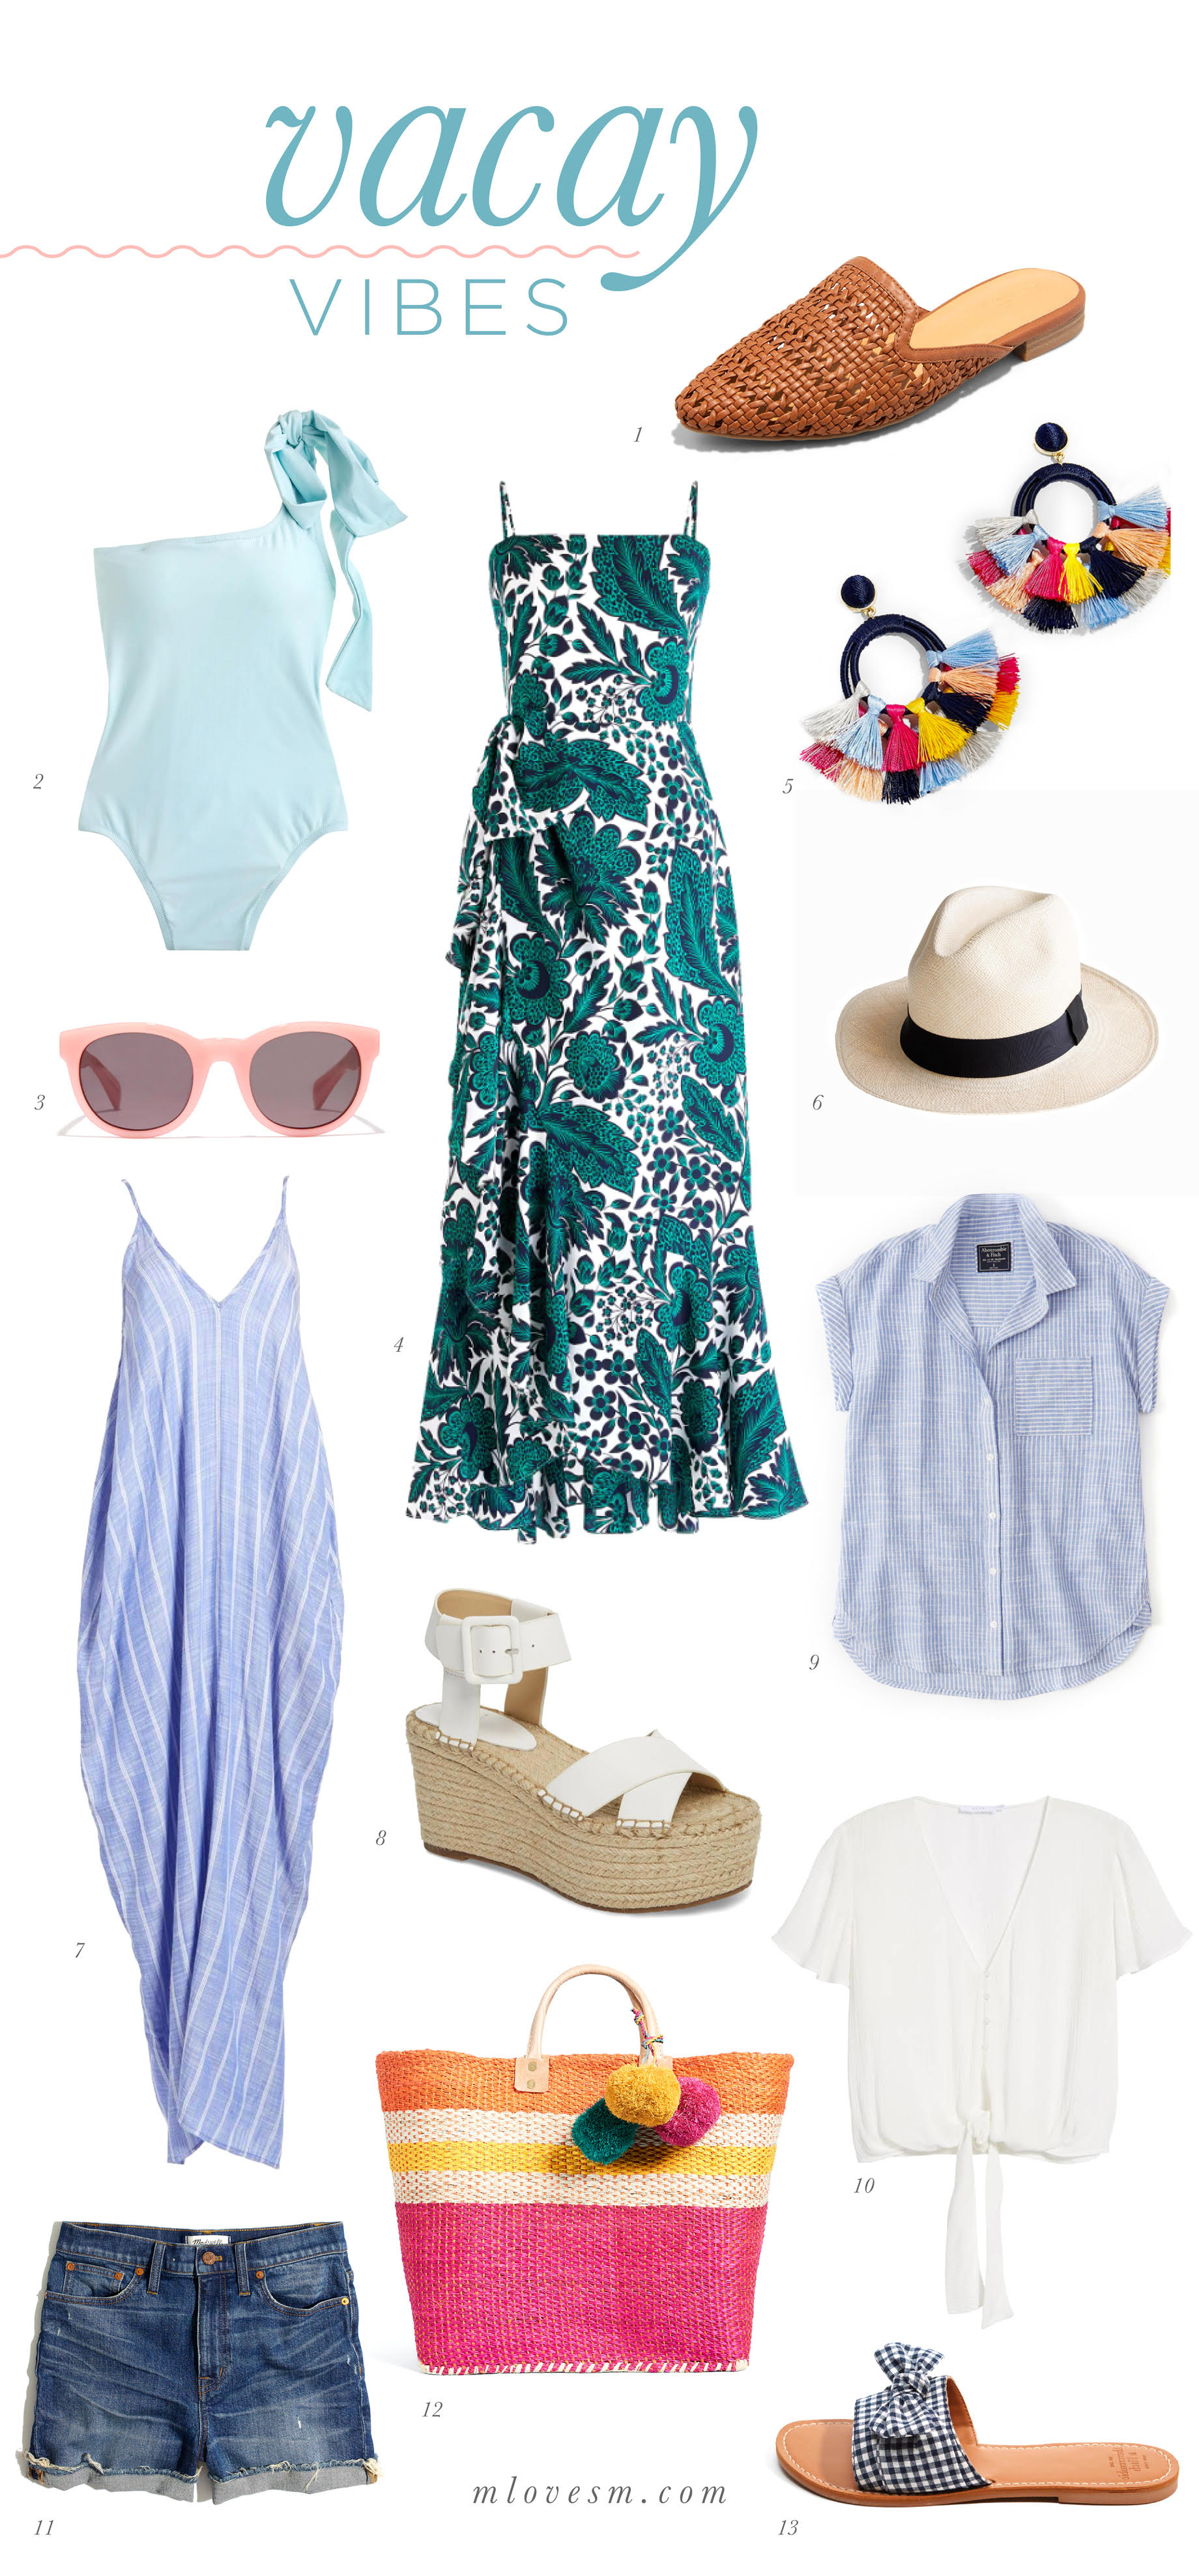 Vacay Vibes - Tropical Outfit Inspiration for hawaii trip - M Loves M